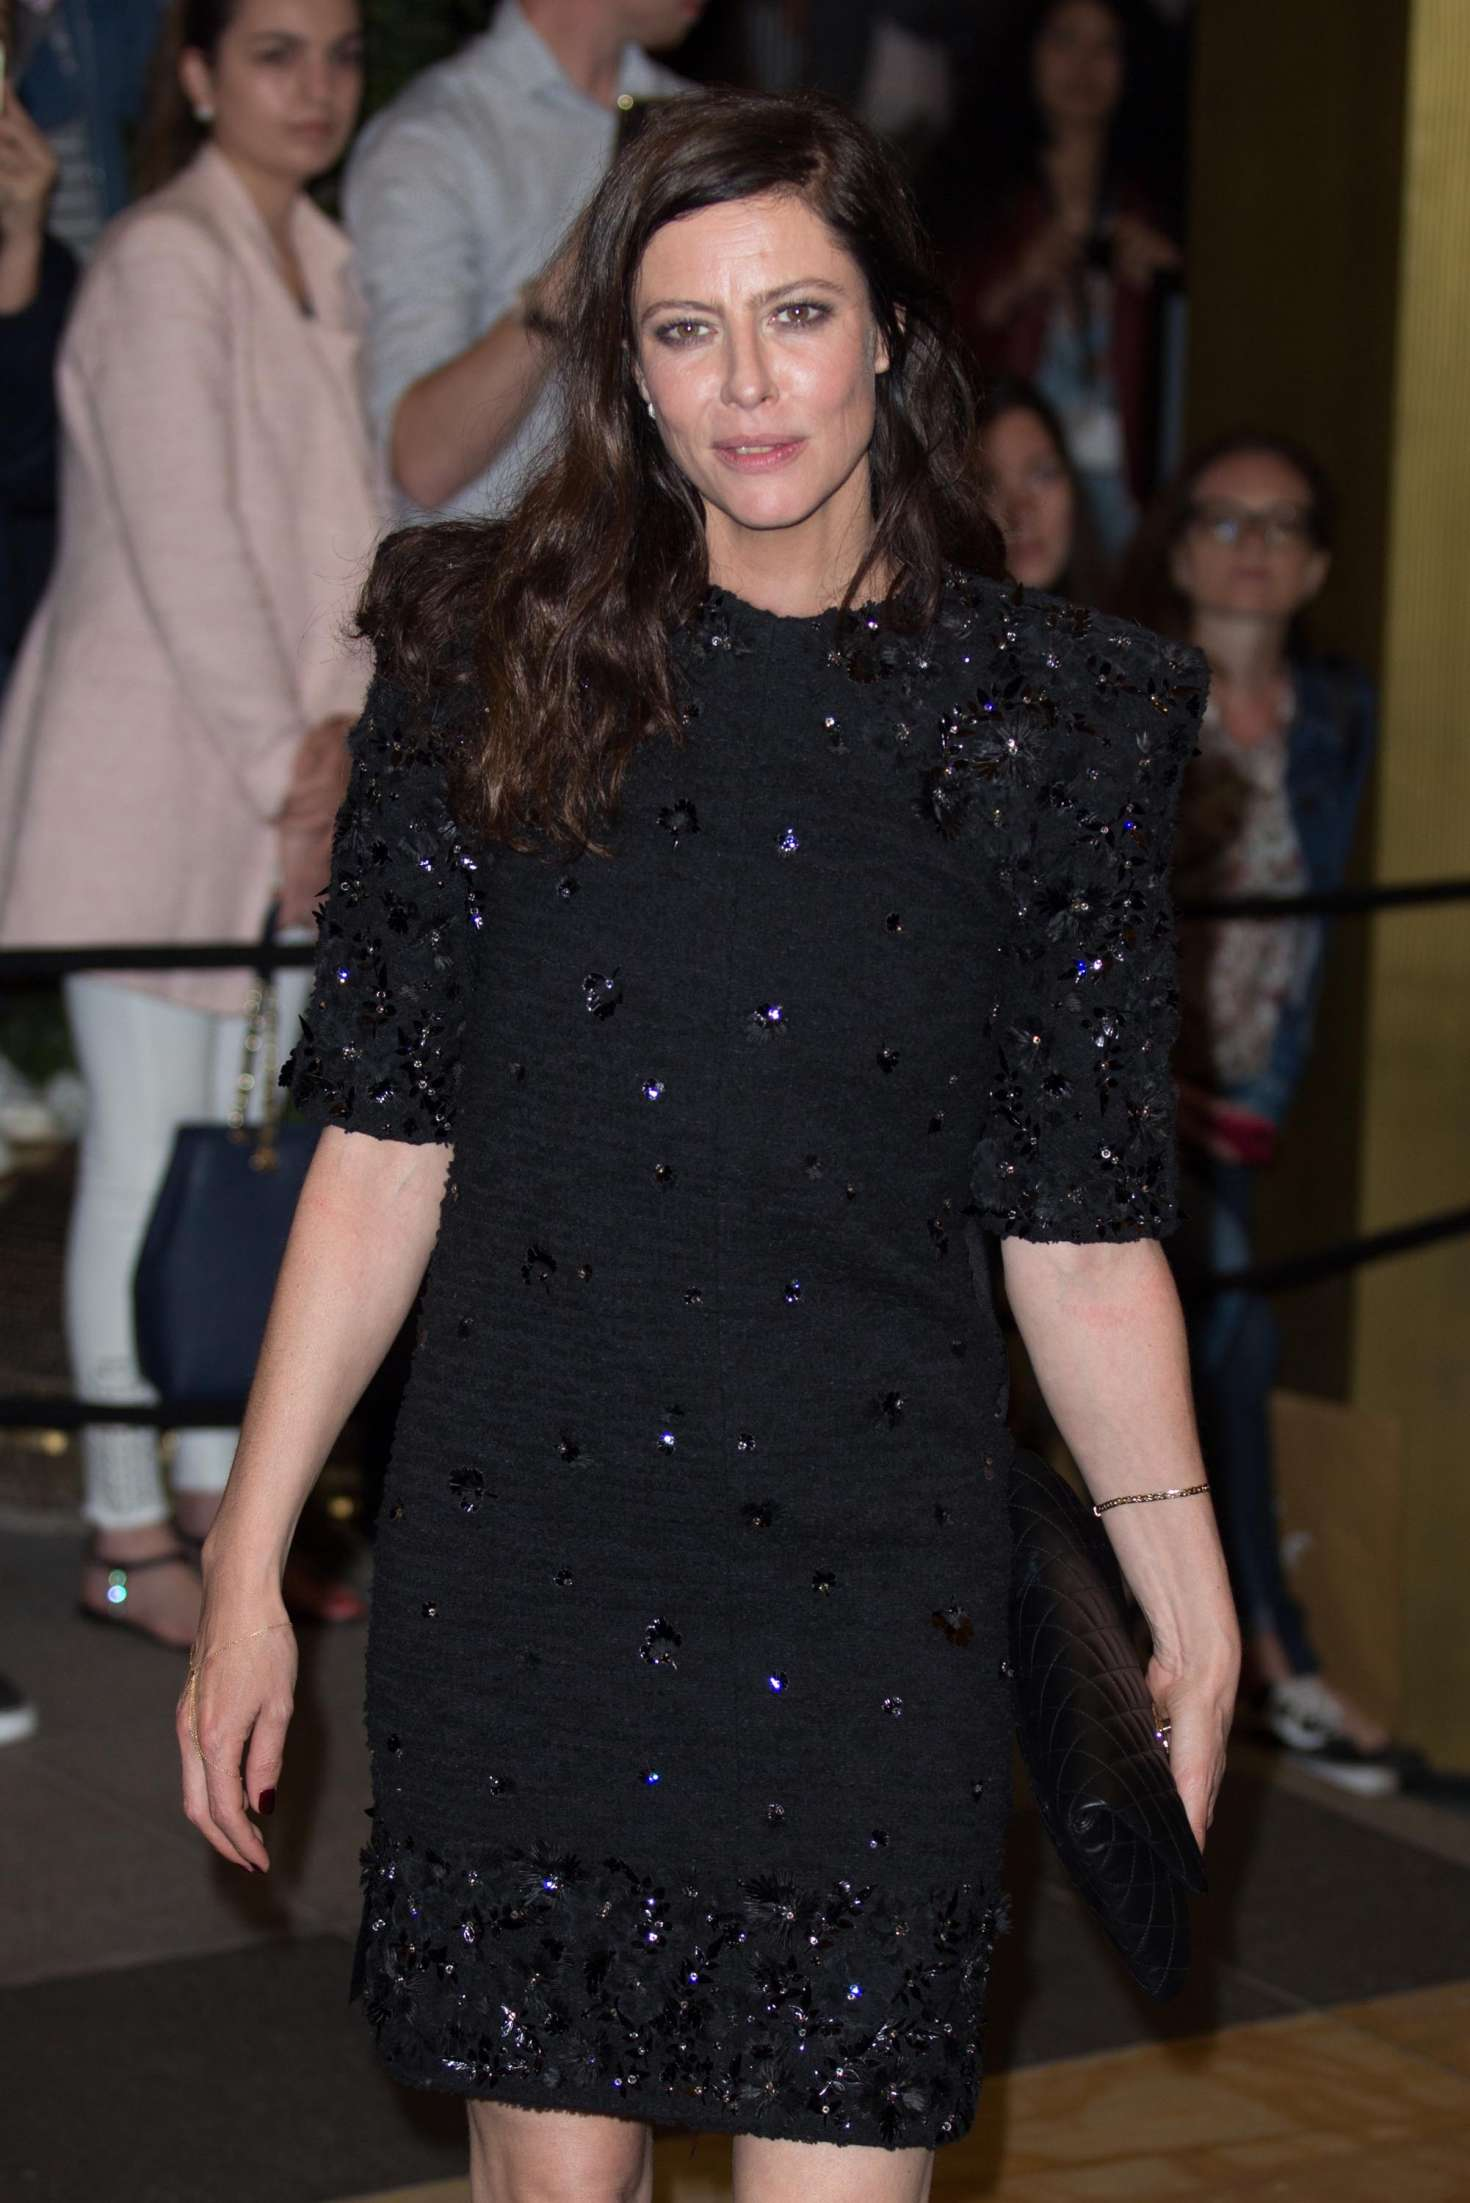 Anna Mouglalis - Arrives at the Vanity Fair Party in Cannes